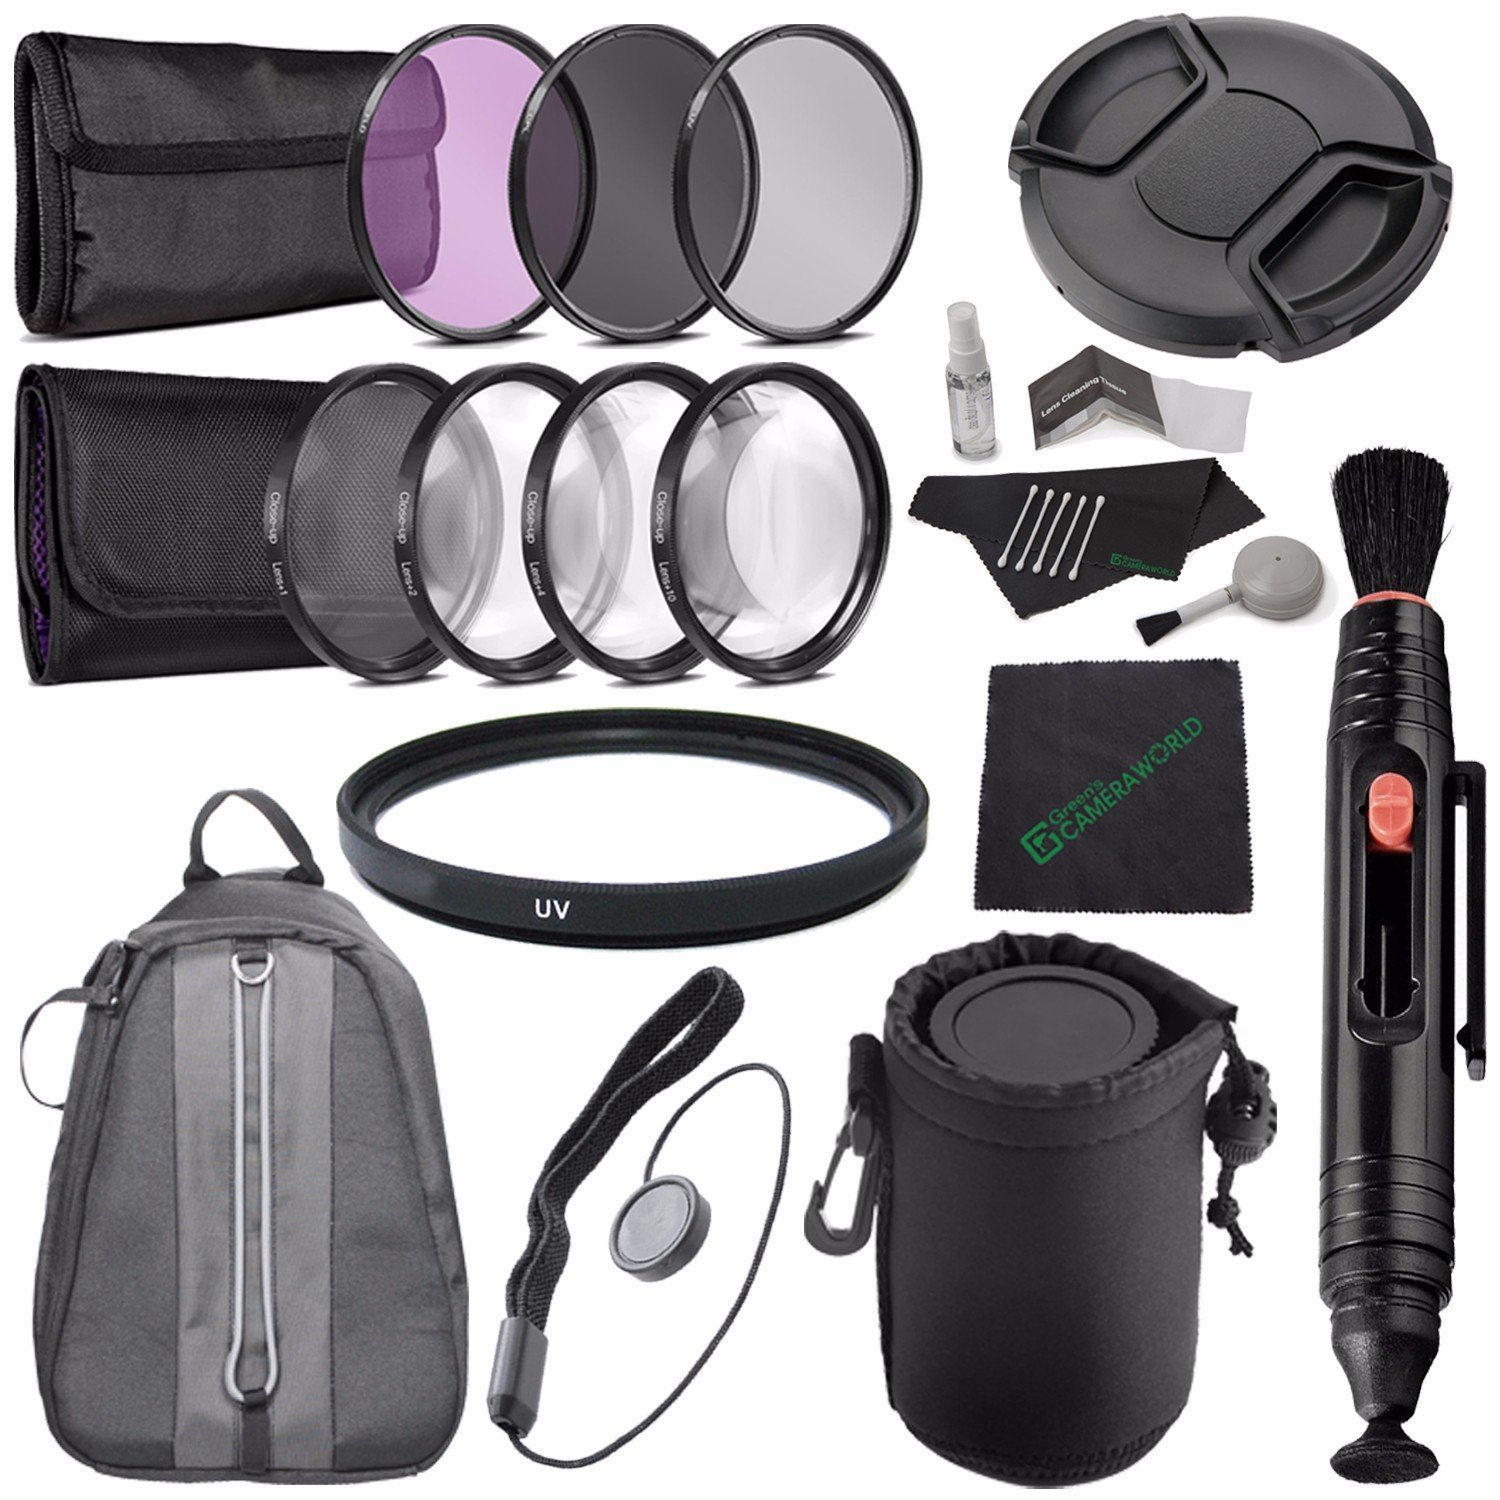 82mm 3 Piece Filter Set (UV, CPL, FL) + 82mm +1 +2 +4 +10 Close-Up Macro Filter Set with Pouch + 82mm Multicoated UV Filter + LENS CAP 82MM + Lens Pen Cleaner + Lens Cap Keeper + Cleaning Cloth Bundle